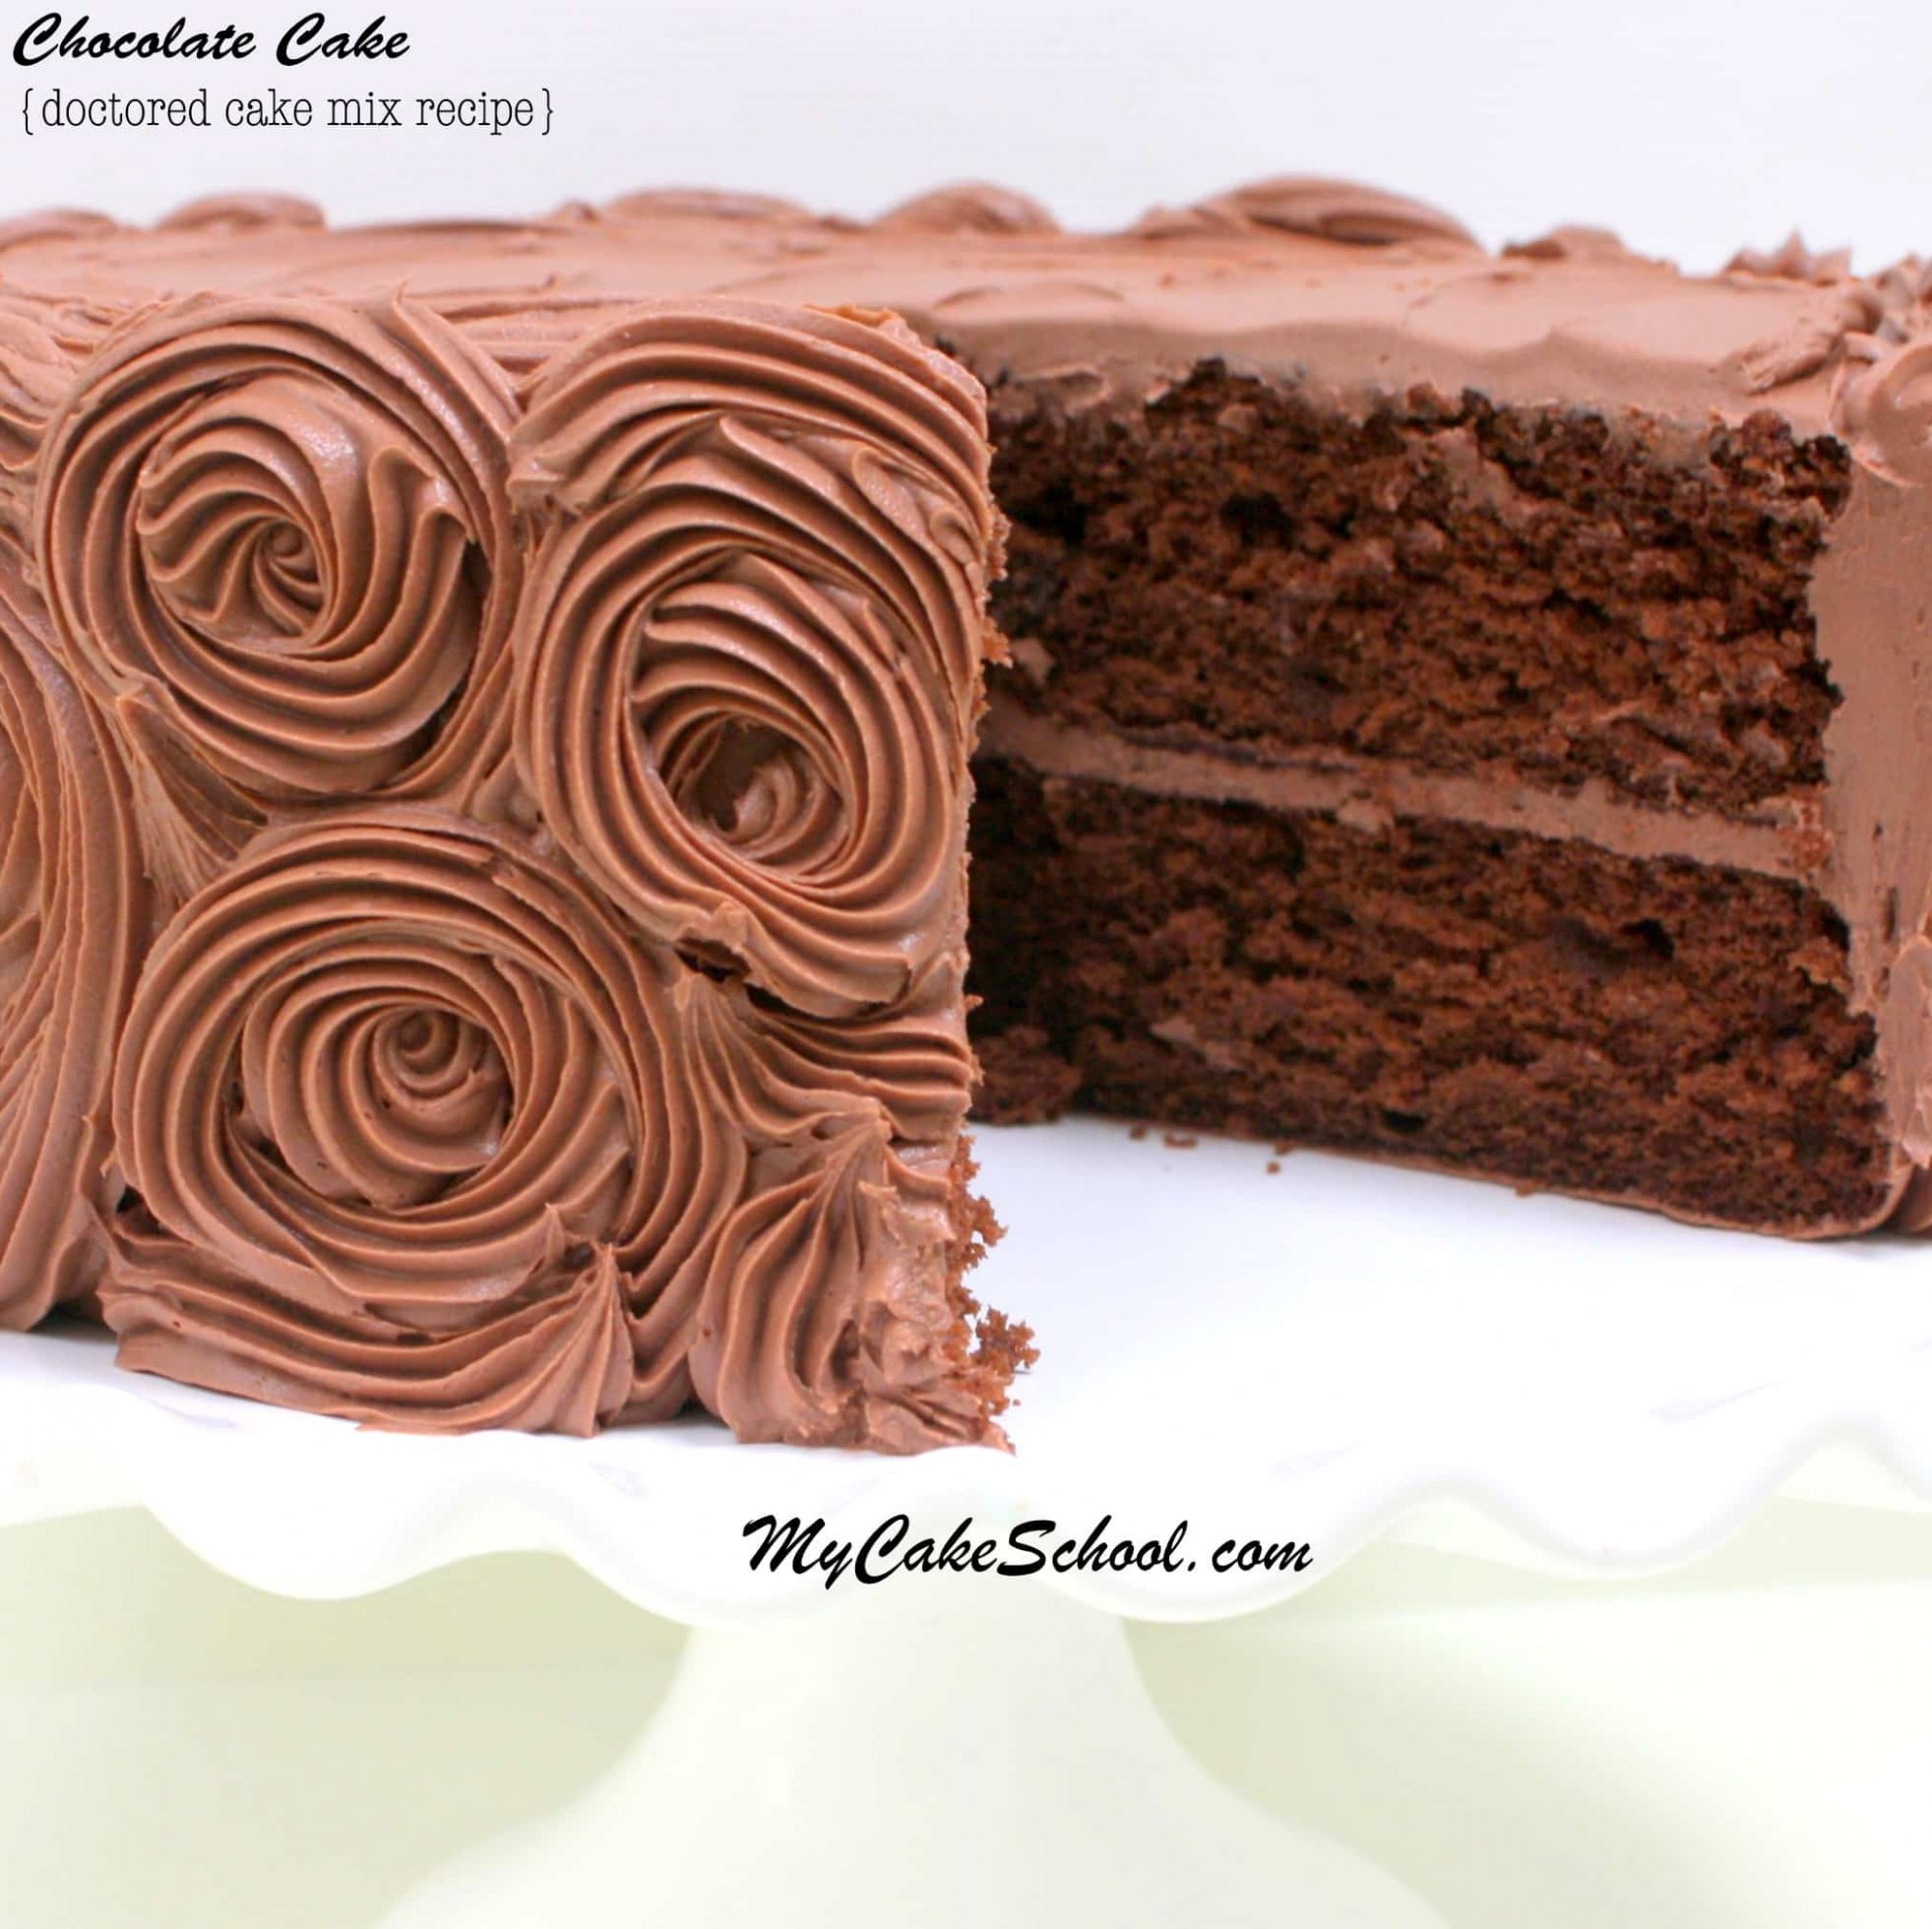 Chocolate Cake~A Doctored Mix Recipe | My Cake School - Recipes Chocolate Cake Mix